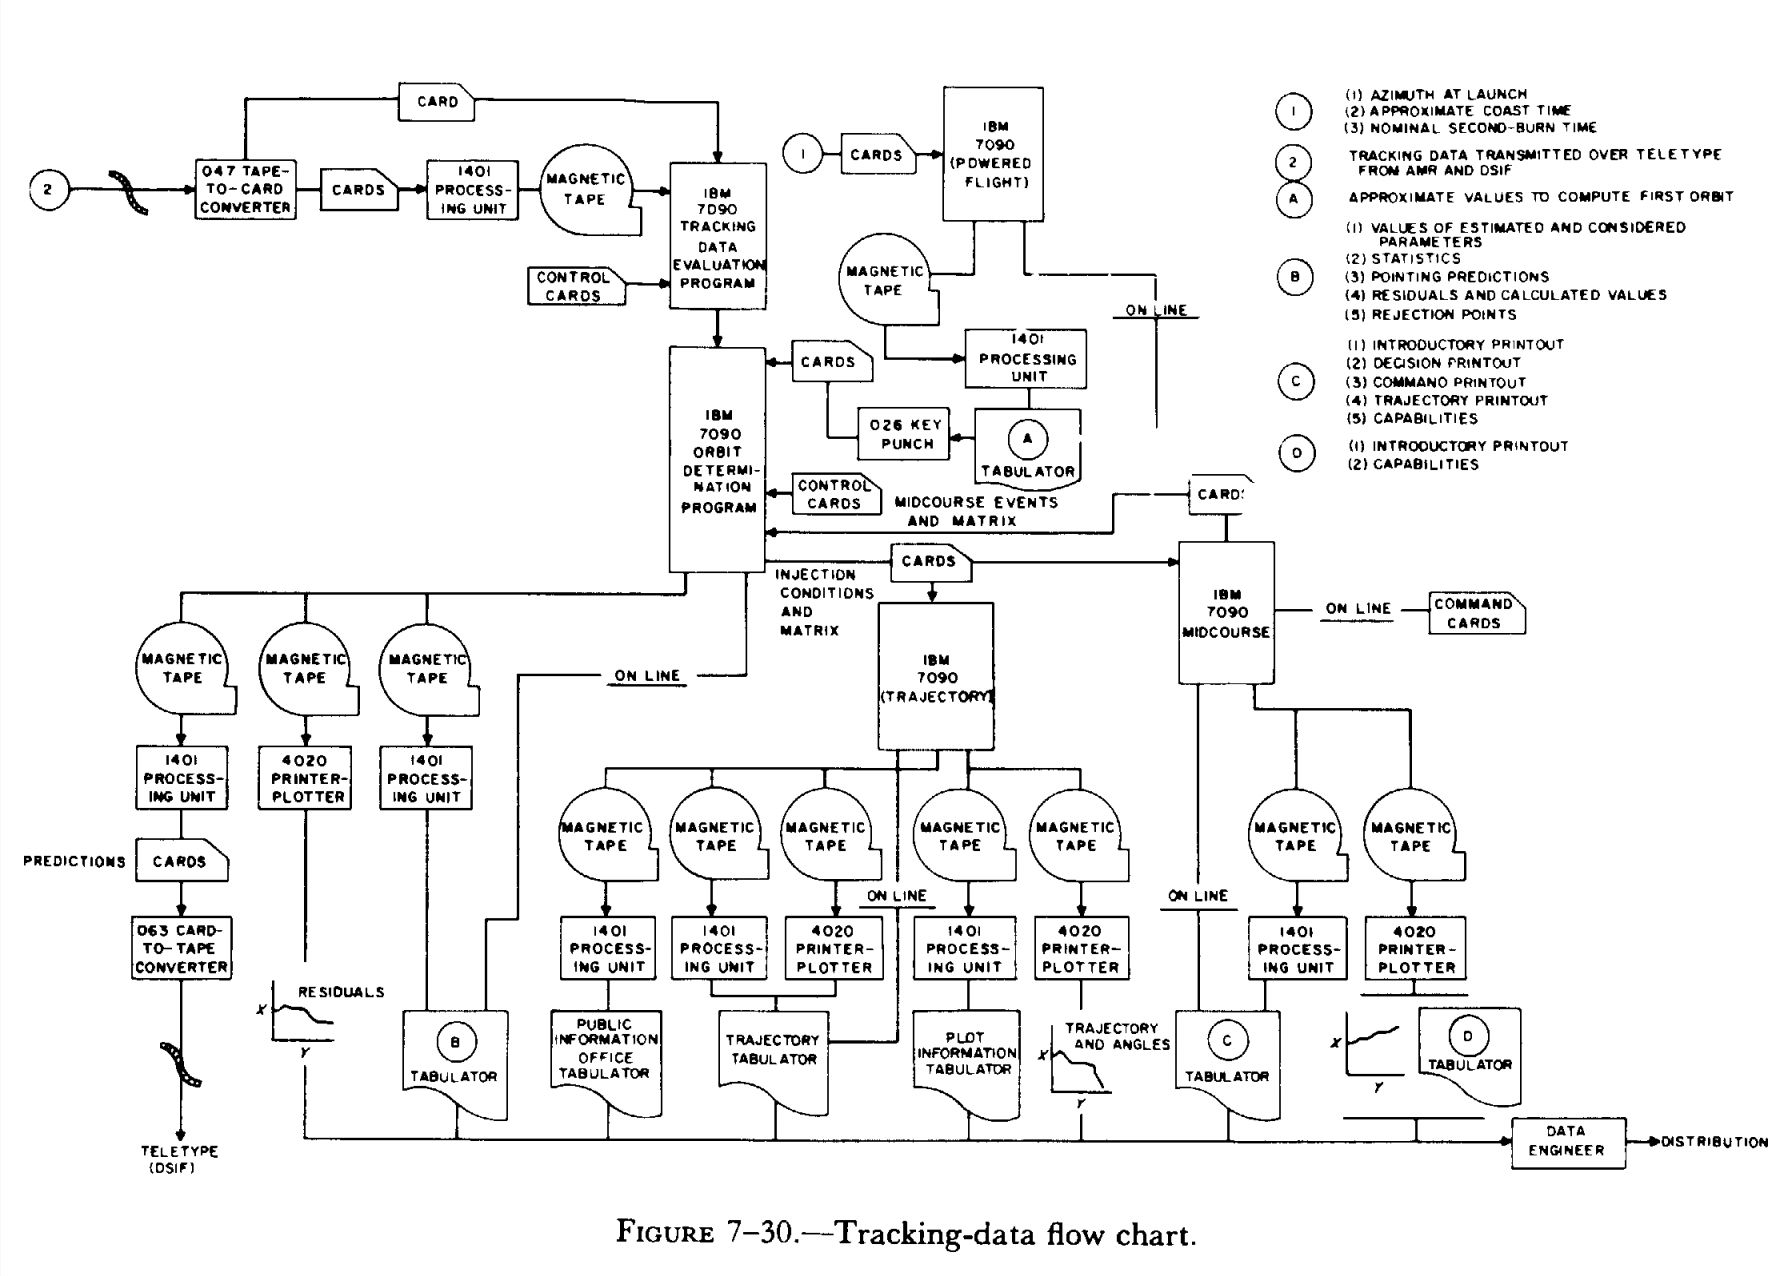 76cefcd0e429 File Tracking-data flow chart.jpg - Wikimedia Commons